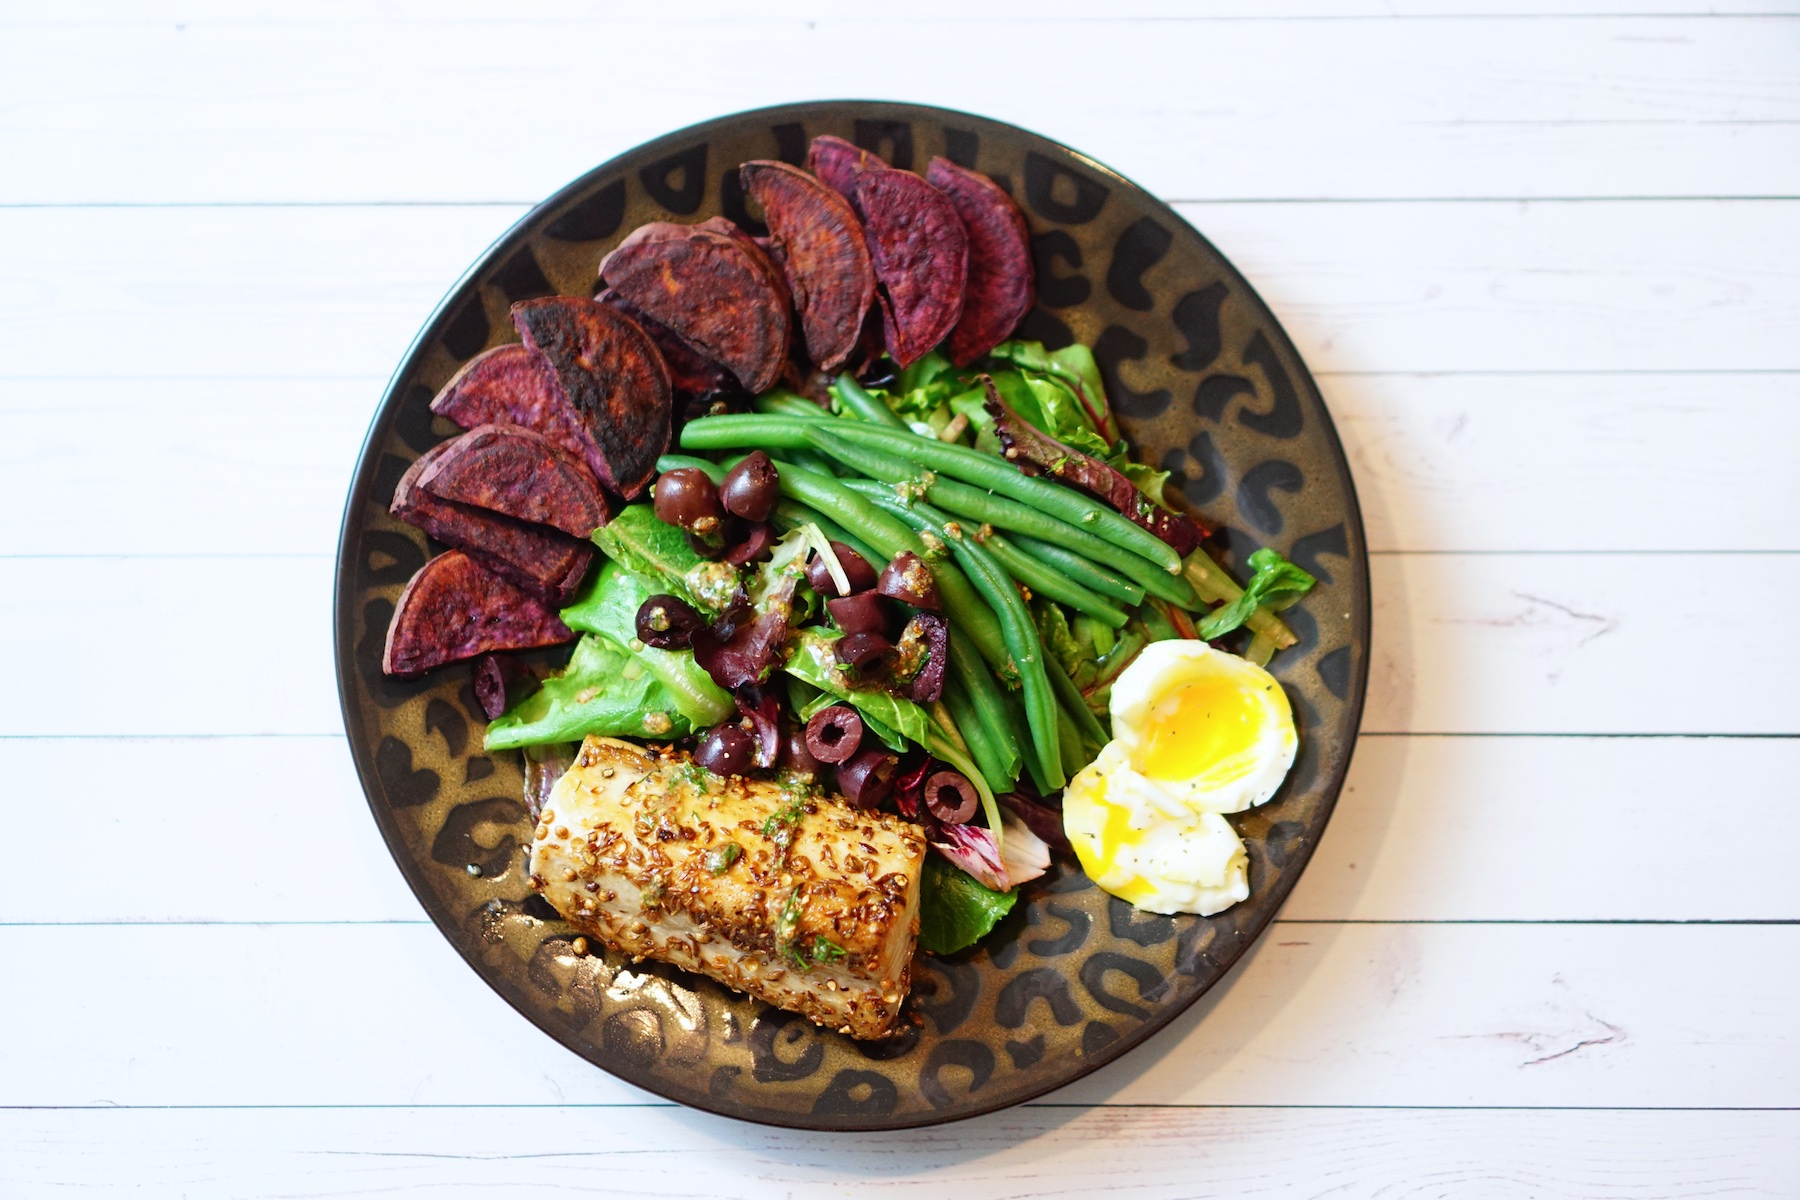 Seared Albacore Tuna, Green Beans, Soft Cooked Egg, and Herb Vinaigrette